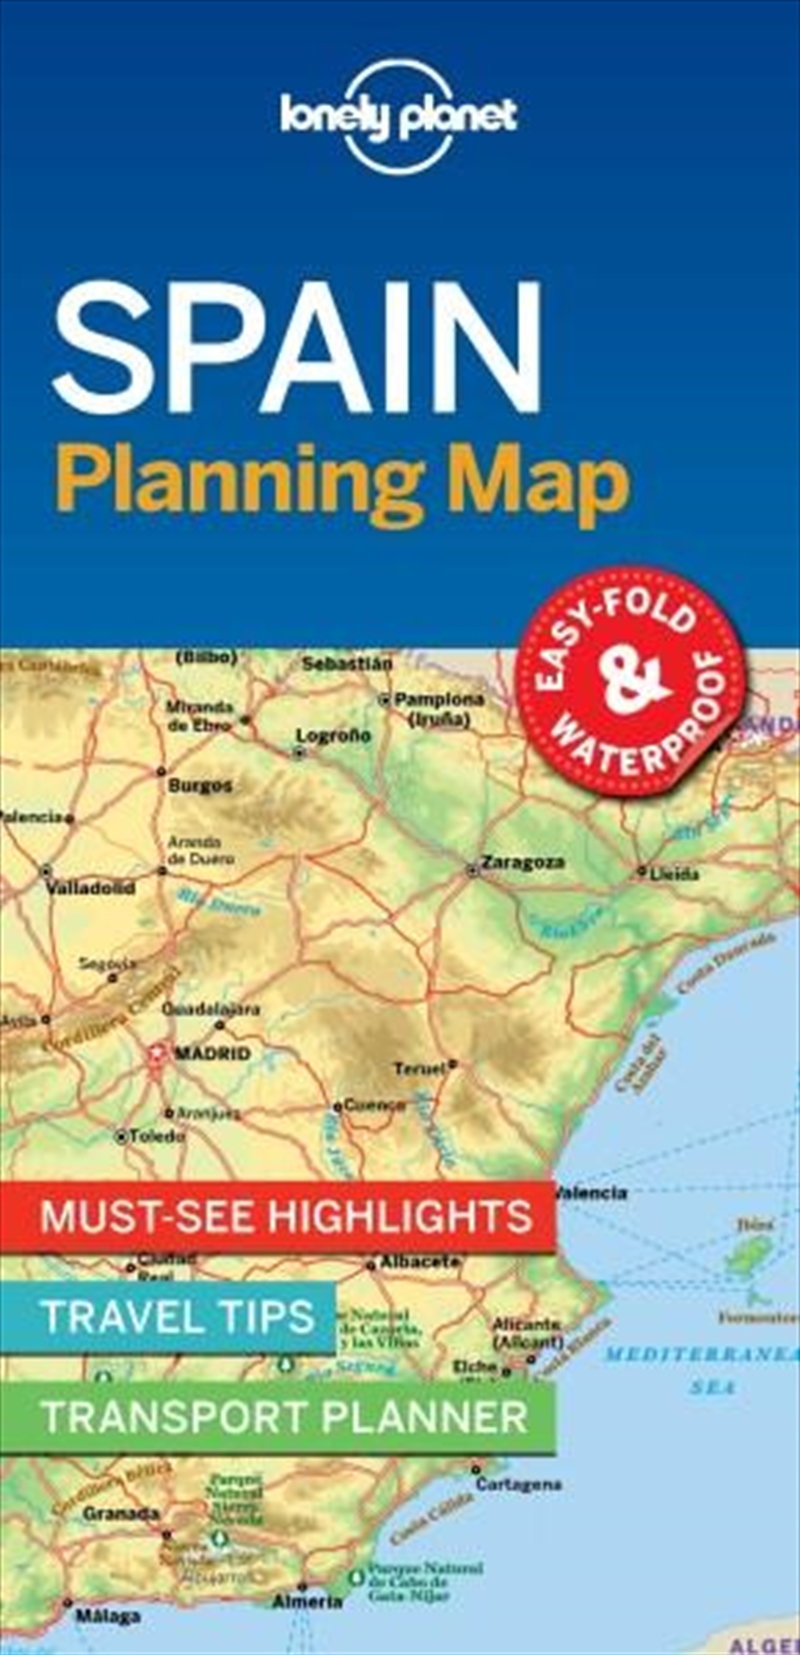 Lonely Planet - Spain Planning Map | Sheet Map